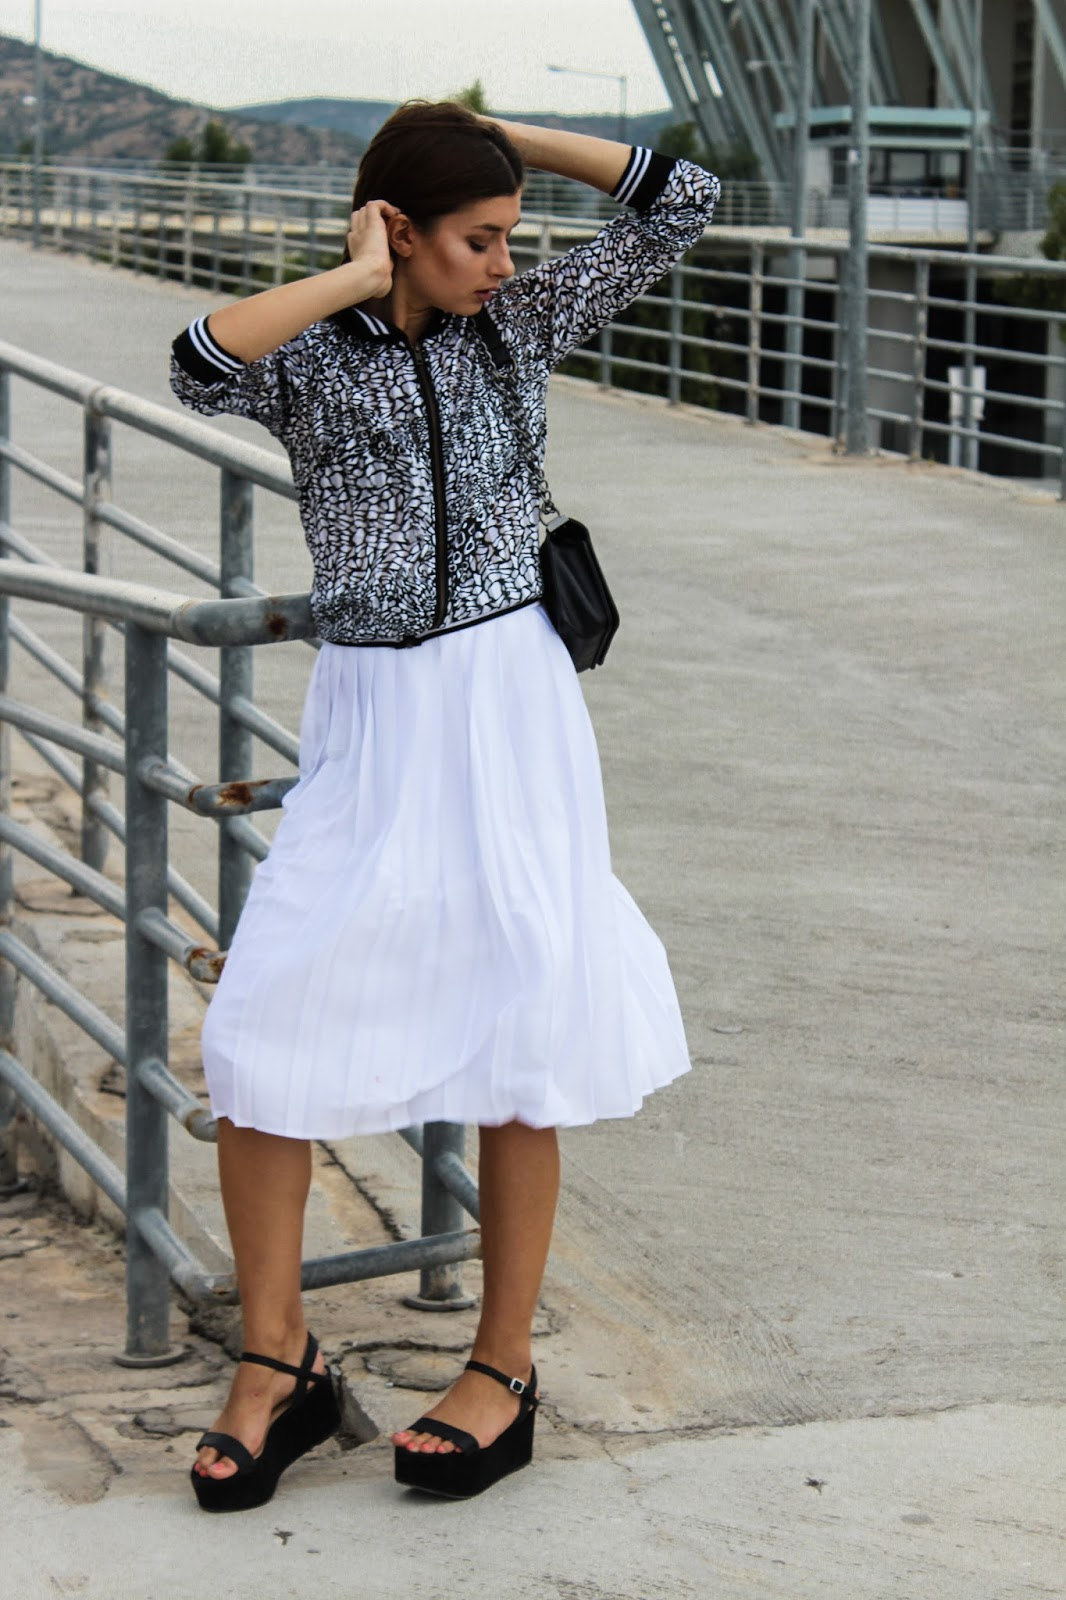 a394f9a1270 A printed bomber jacket with sporty details rocks this white pleated  skirt.Pleated midi skirts will ''rule'' the world for the next season in  lots of ...